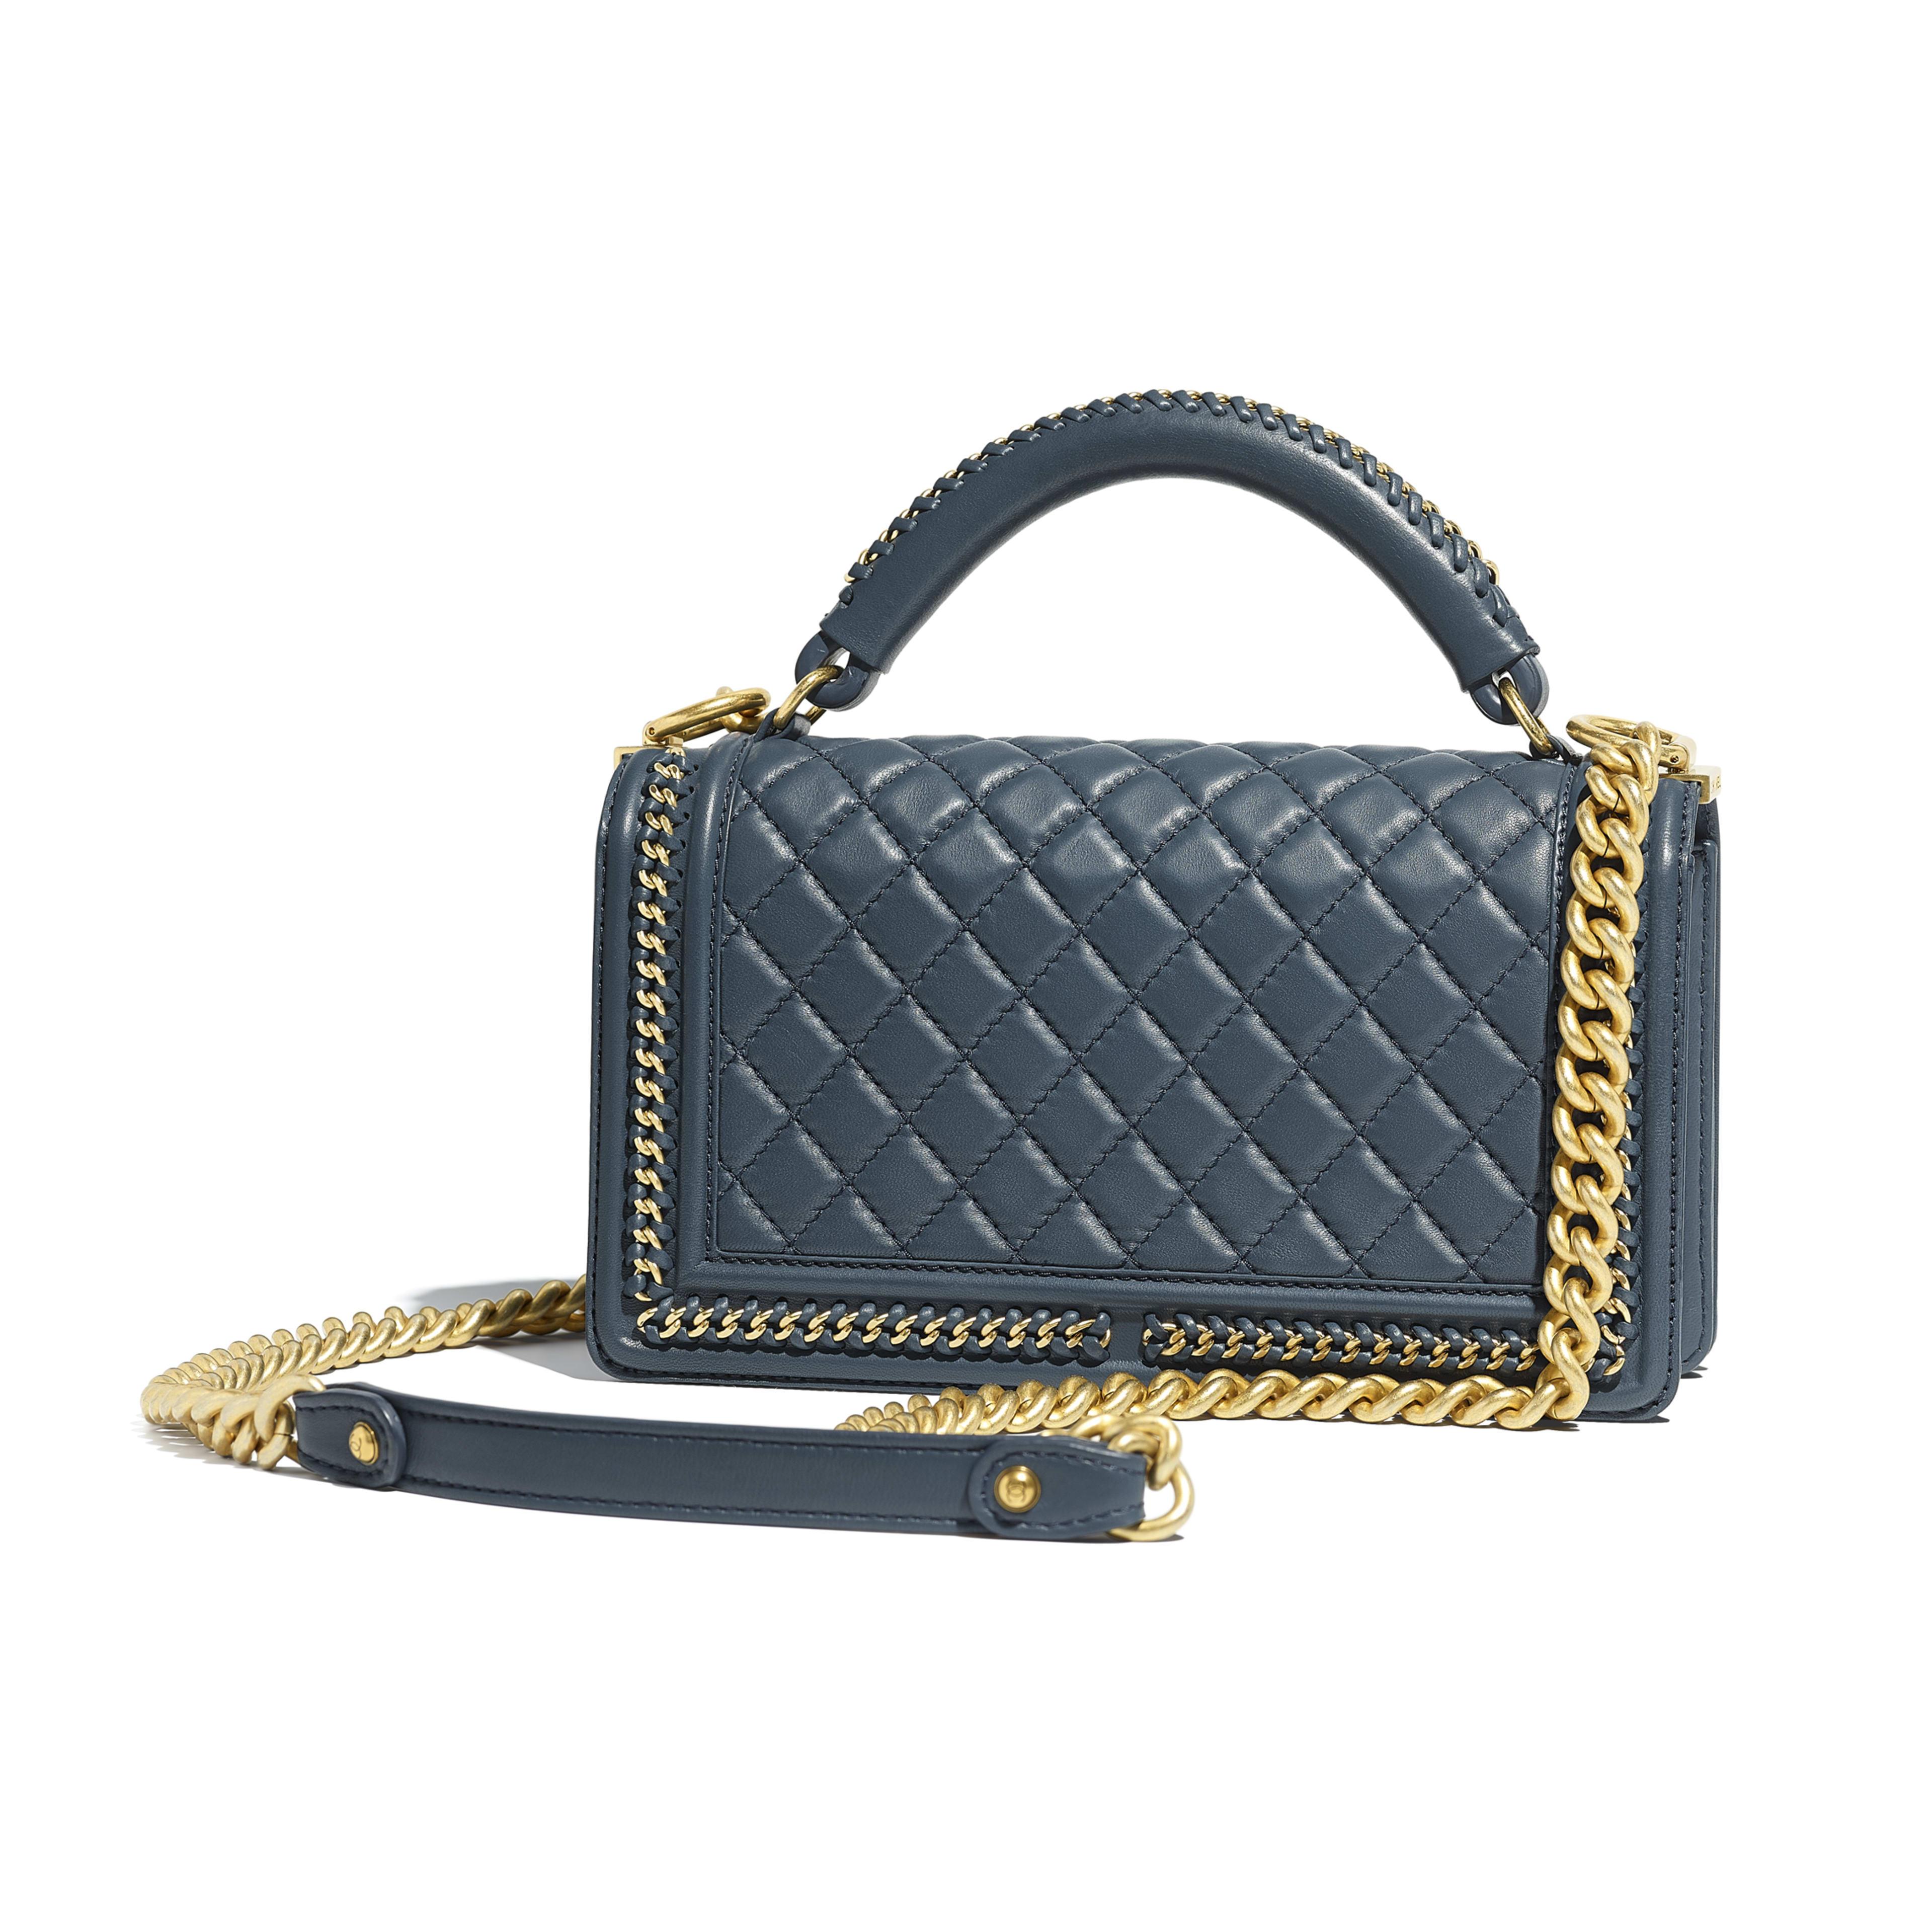 BOY CHANEL Flap Bag with Handle - Blue - Calfskin & Gold-Tone Metal - Alternative view - see full sized version